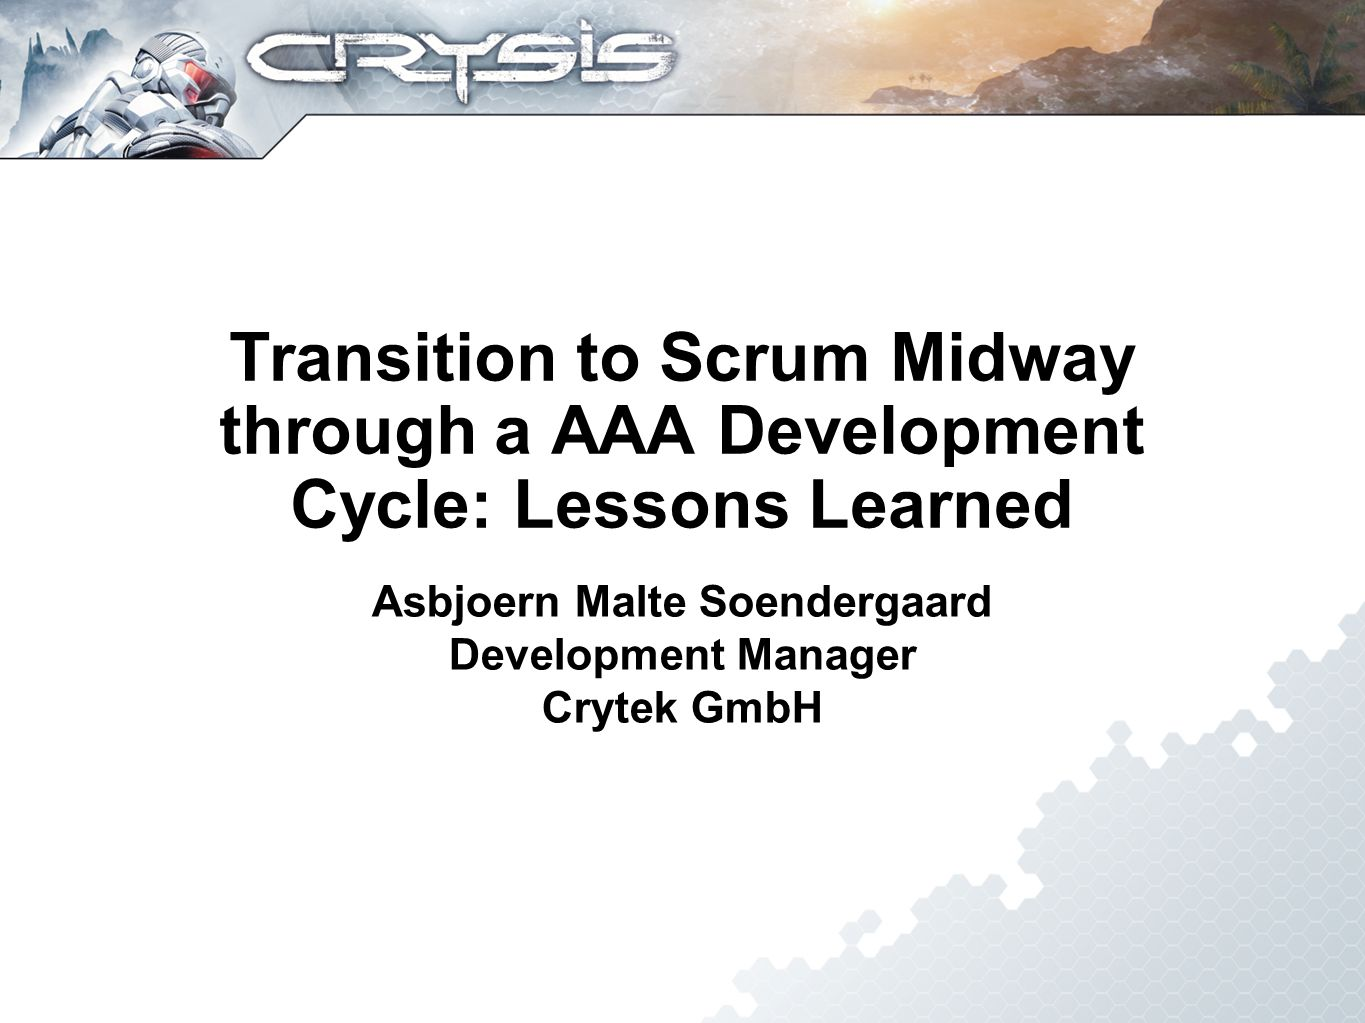 Transition to Scrum Midway through a AAA Development Cycle: Lessons Learned Asbjoern Malte Soendergaard Development Manager Crytek GmbH